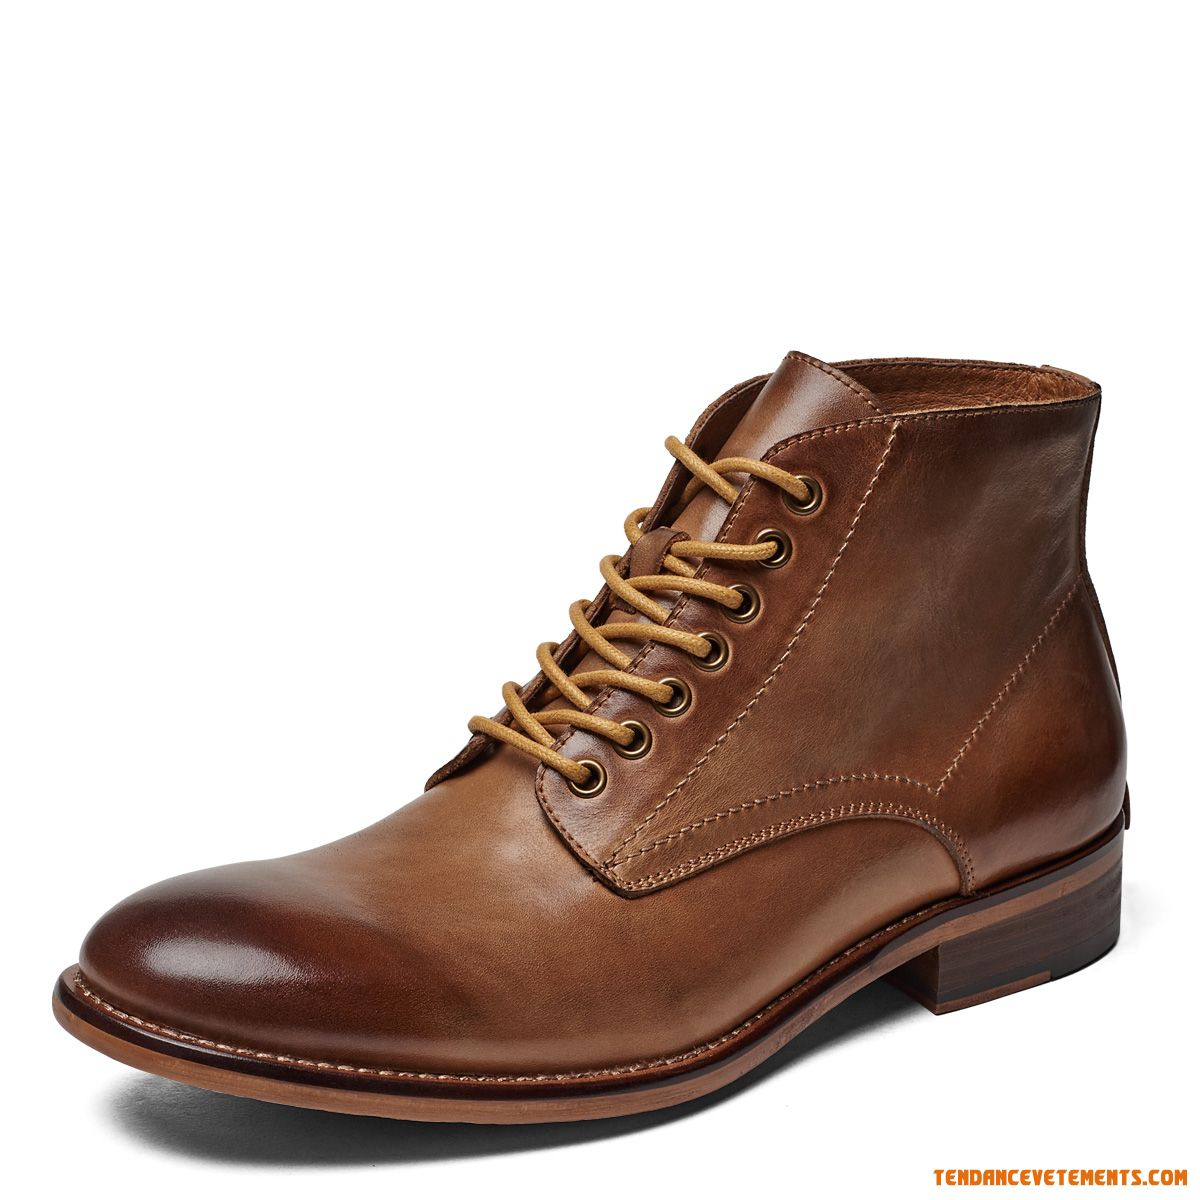 Rétro Bottes Martin Angleterre Homme Mode Bronzage